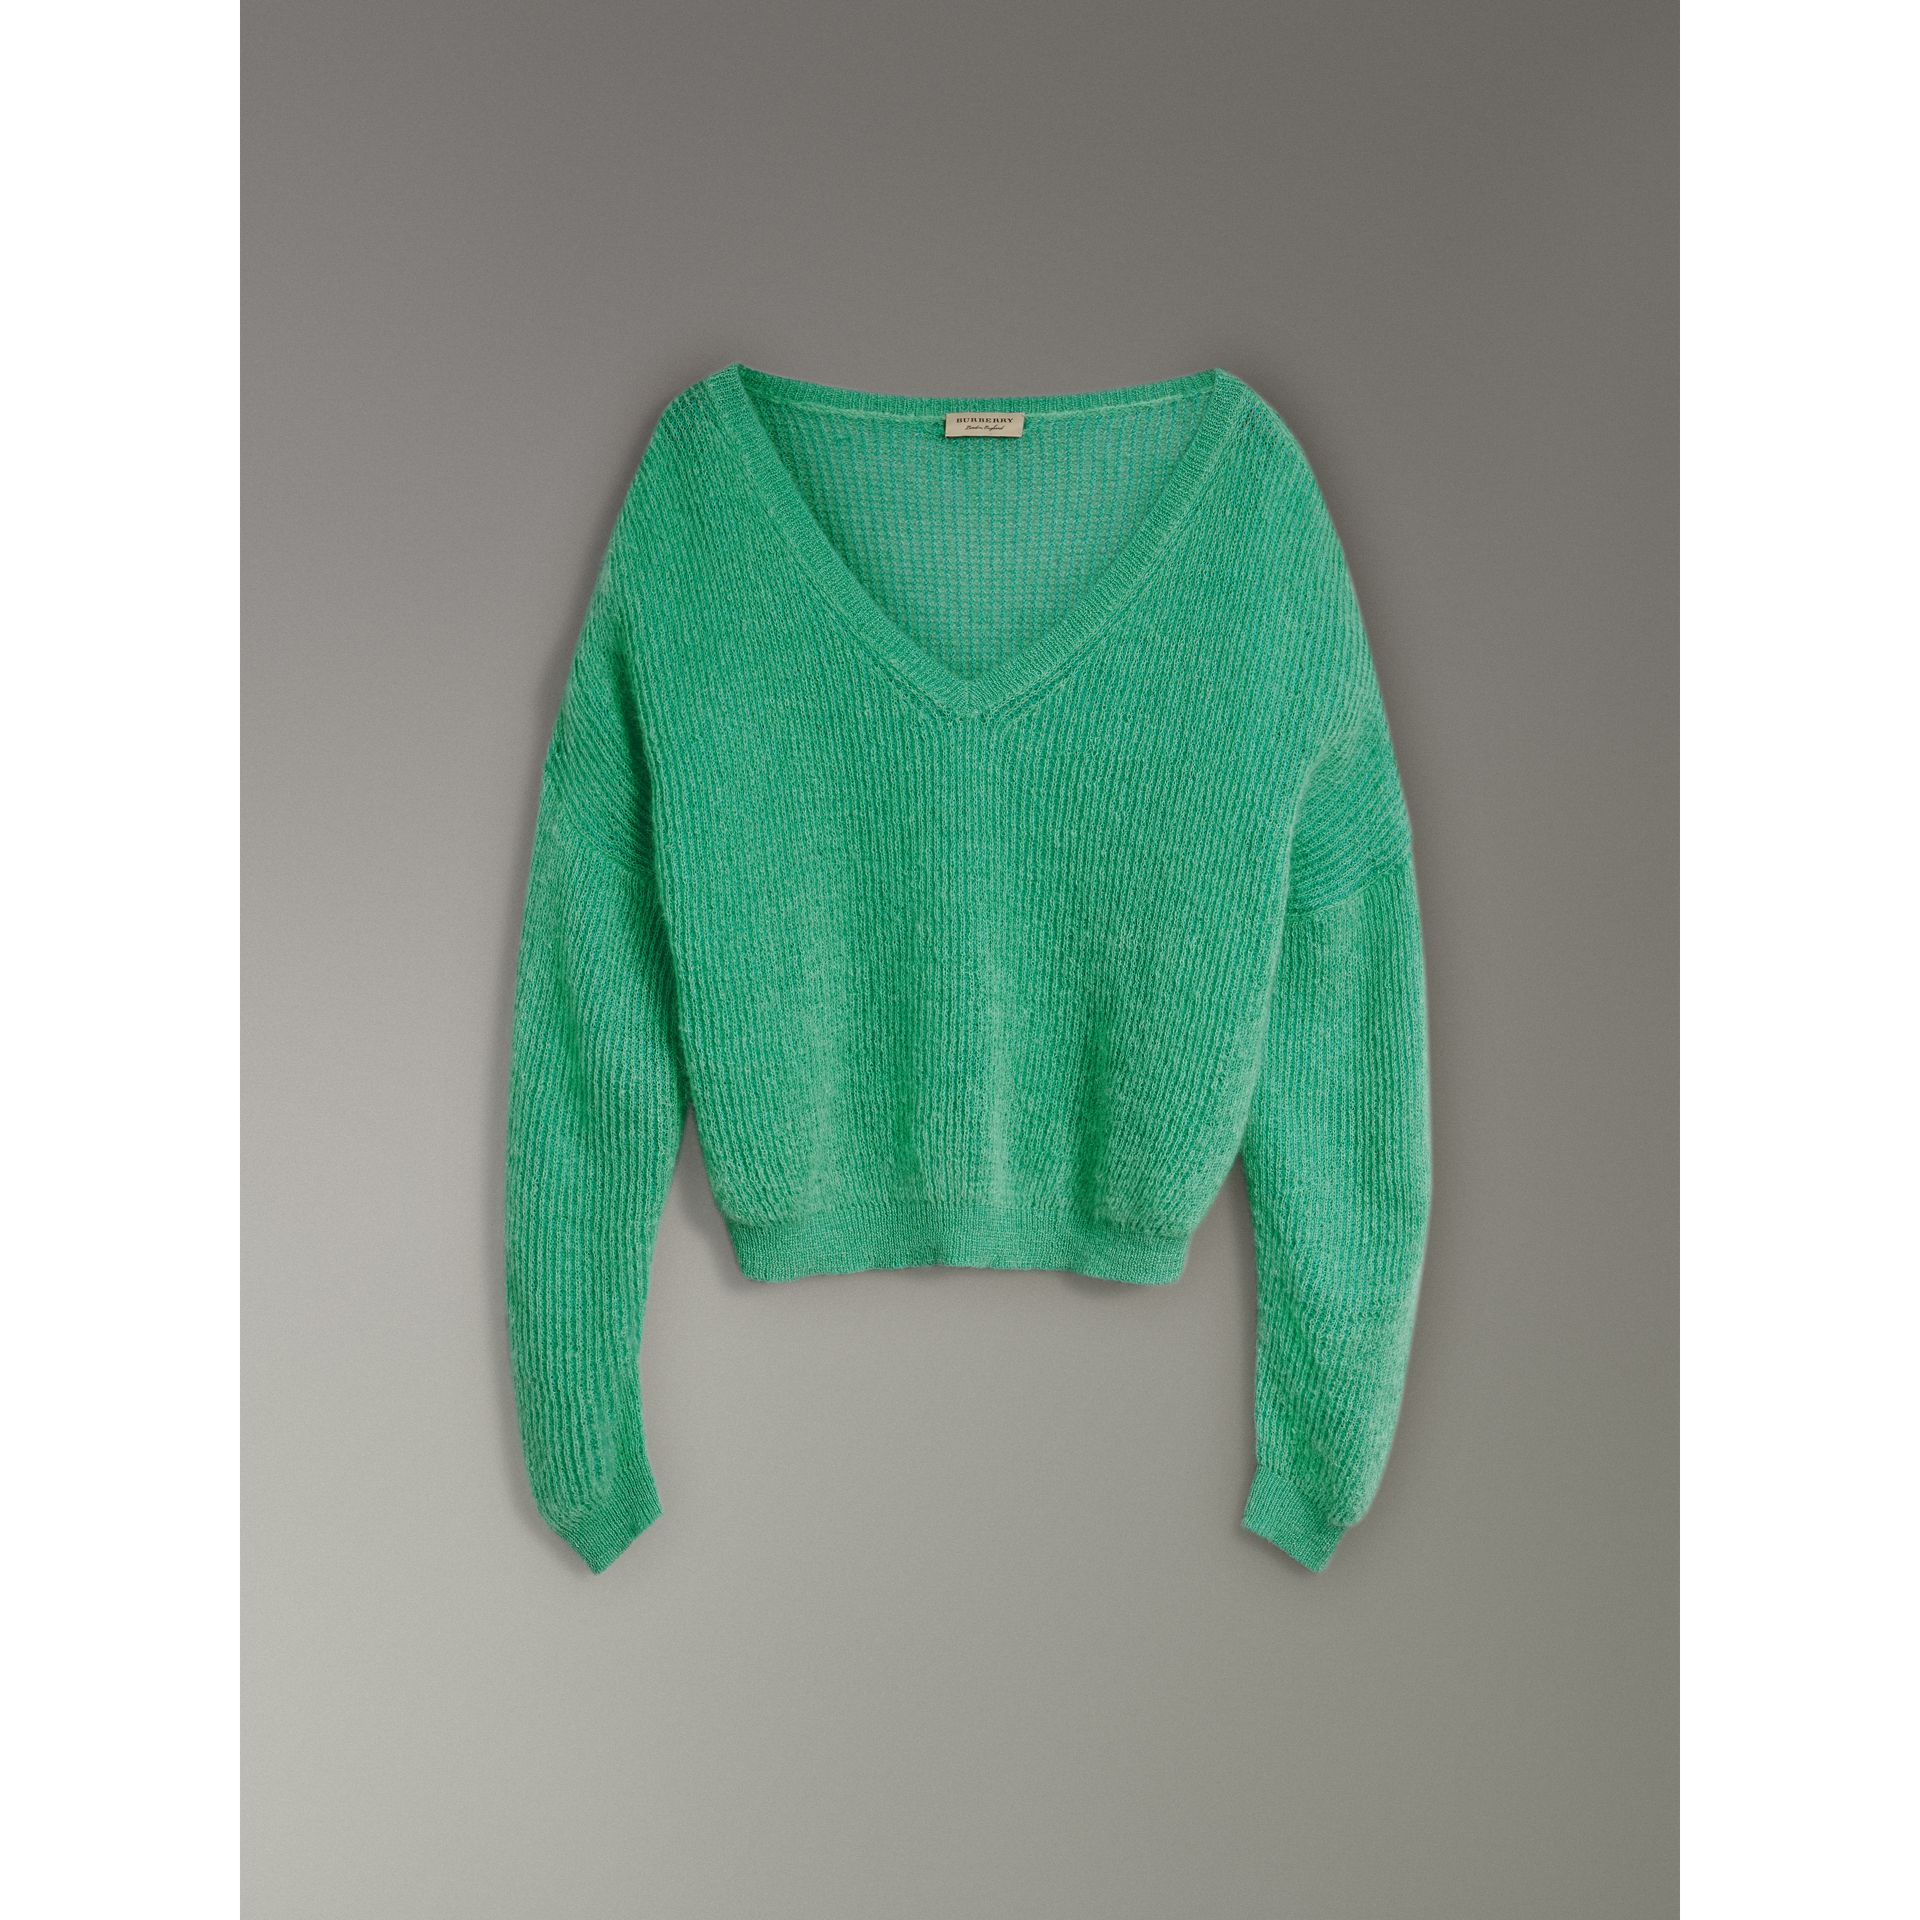 Rib Knit Mohair Silk Blend V-neck Sweater in Aqua Green - Women | Burberry - gallery image 3